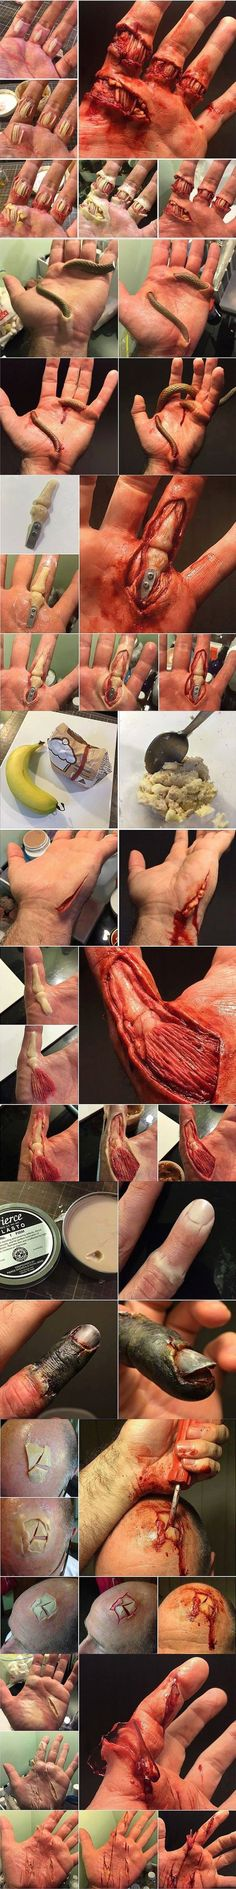 Halloween / SFX makeup that could be handy for some freaky cosplays Makeup Fx, Zombie Makeup, Scary Makeup, Cosplay Makeup, Costume Makeup, Hand Makeup, Blood Makeup, Awesome Makeup, Makeup Tricks